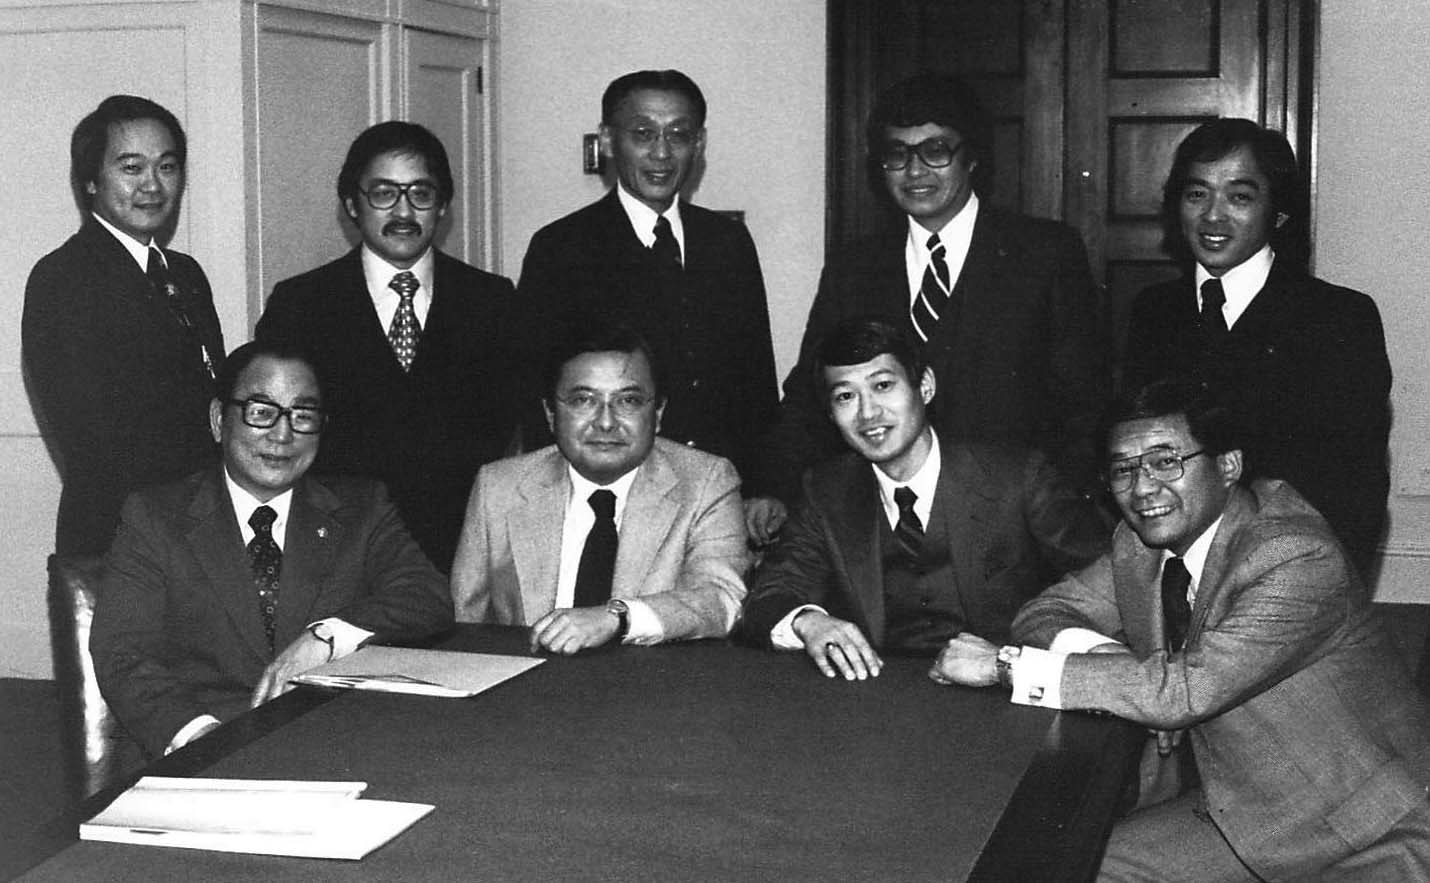 Ron Mamiya is seen in back row, second left, during a JACL's National Committee for Redress. Other people in the photo include (back, from left) Karl Nobuyuki, Ron Mamiya, Clifford Uyeda, Ron Ikejiri, and John Tateishi. They meet with the four JA members of Congress: (front, from left) Senator Spark Matsunaga, Senator Daniel Inouye, Rep. Robert Matsui, and Rep. Norman Mineta. Photo:  Ron Ikejiri / DiscoverNikkei.org